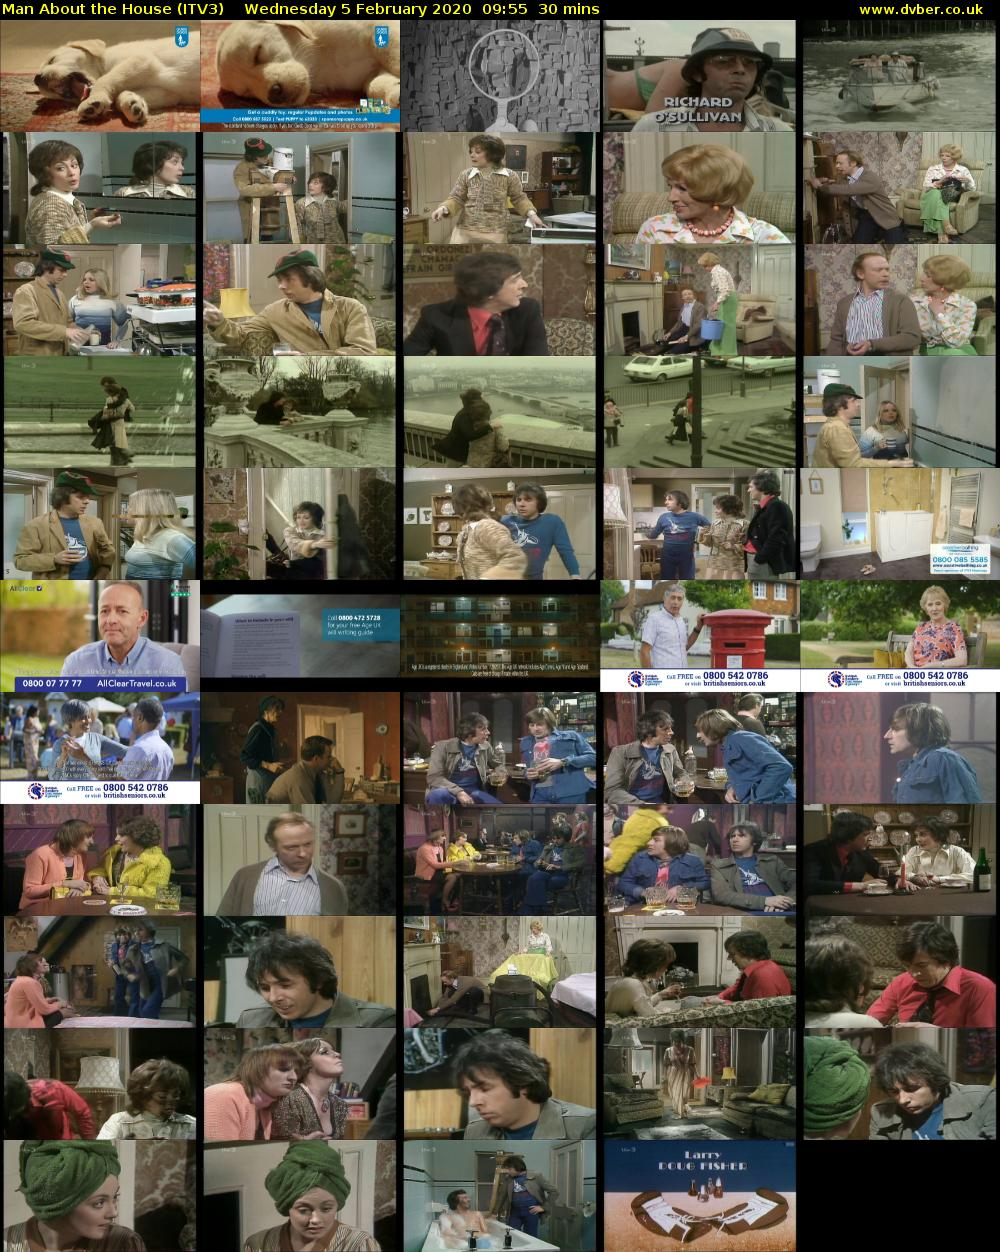 Man About the House (ITV3) Wednesday 5 February 2020 09:55 - 10:25